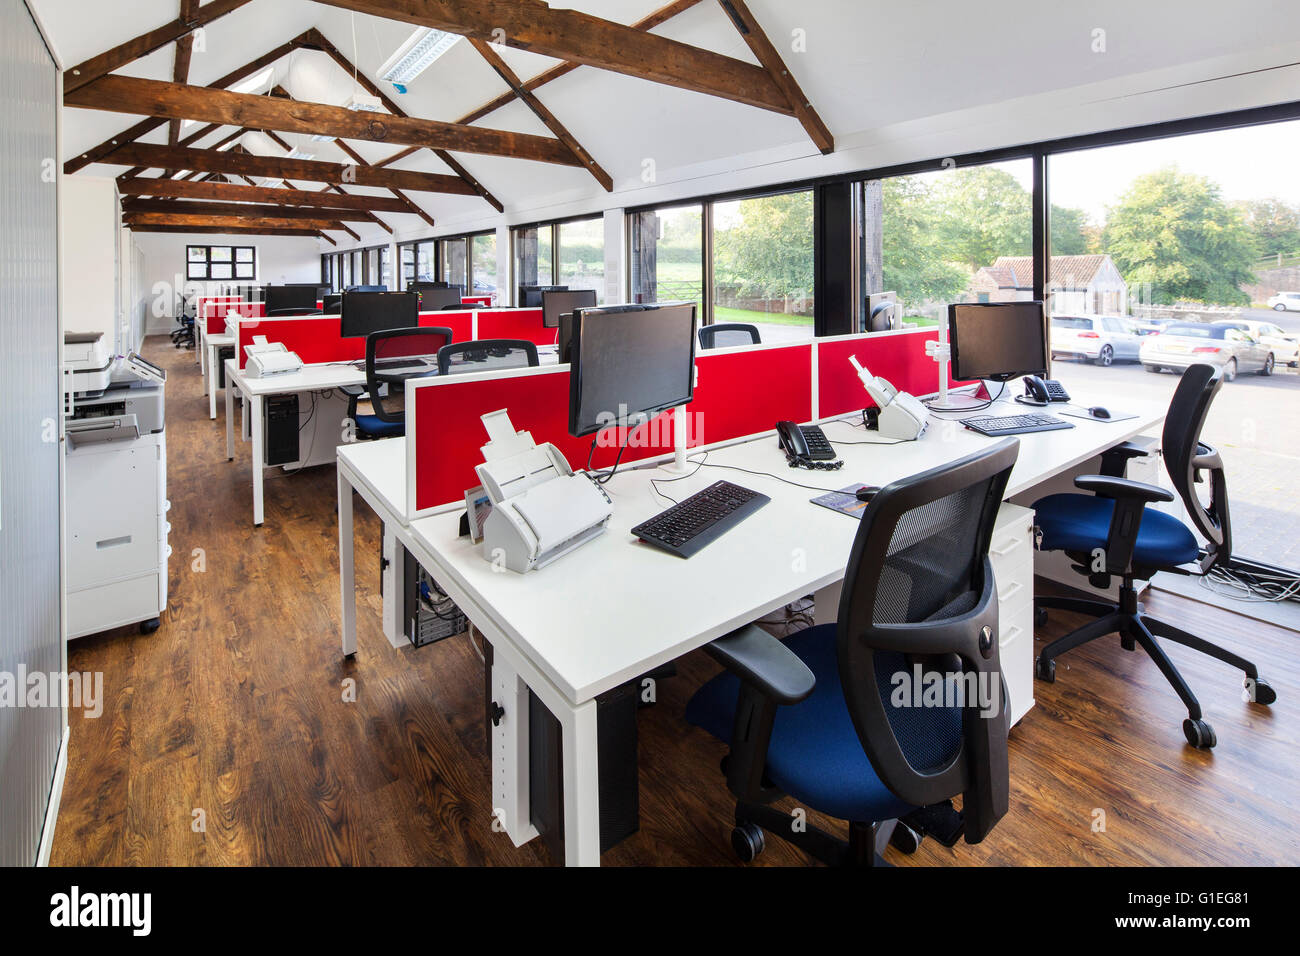 barn office furniture. barn conversion into office space furniture by oeg interiors rows of desks with computers rafters e